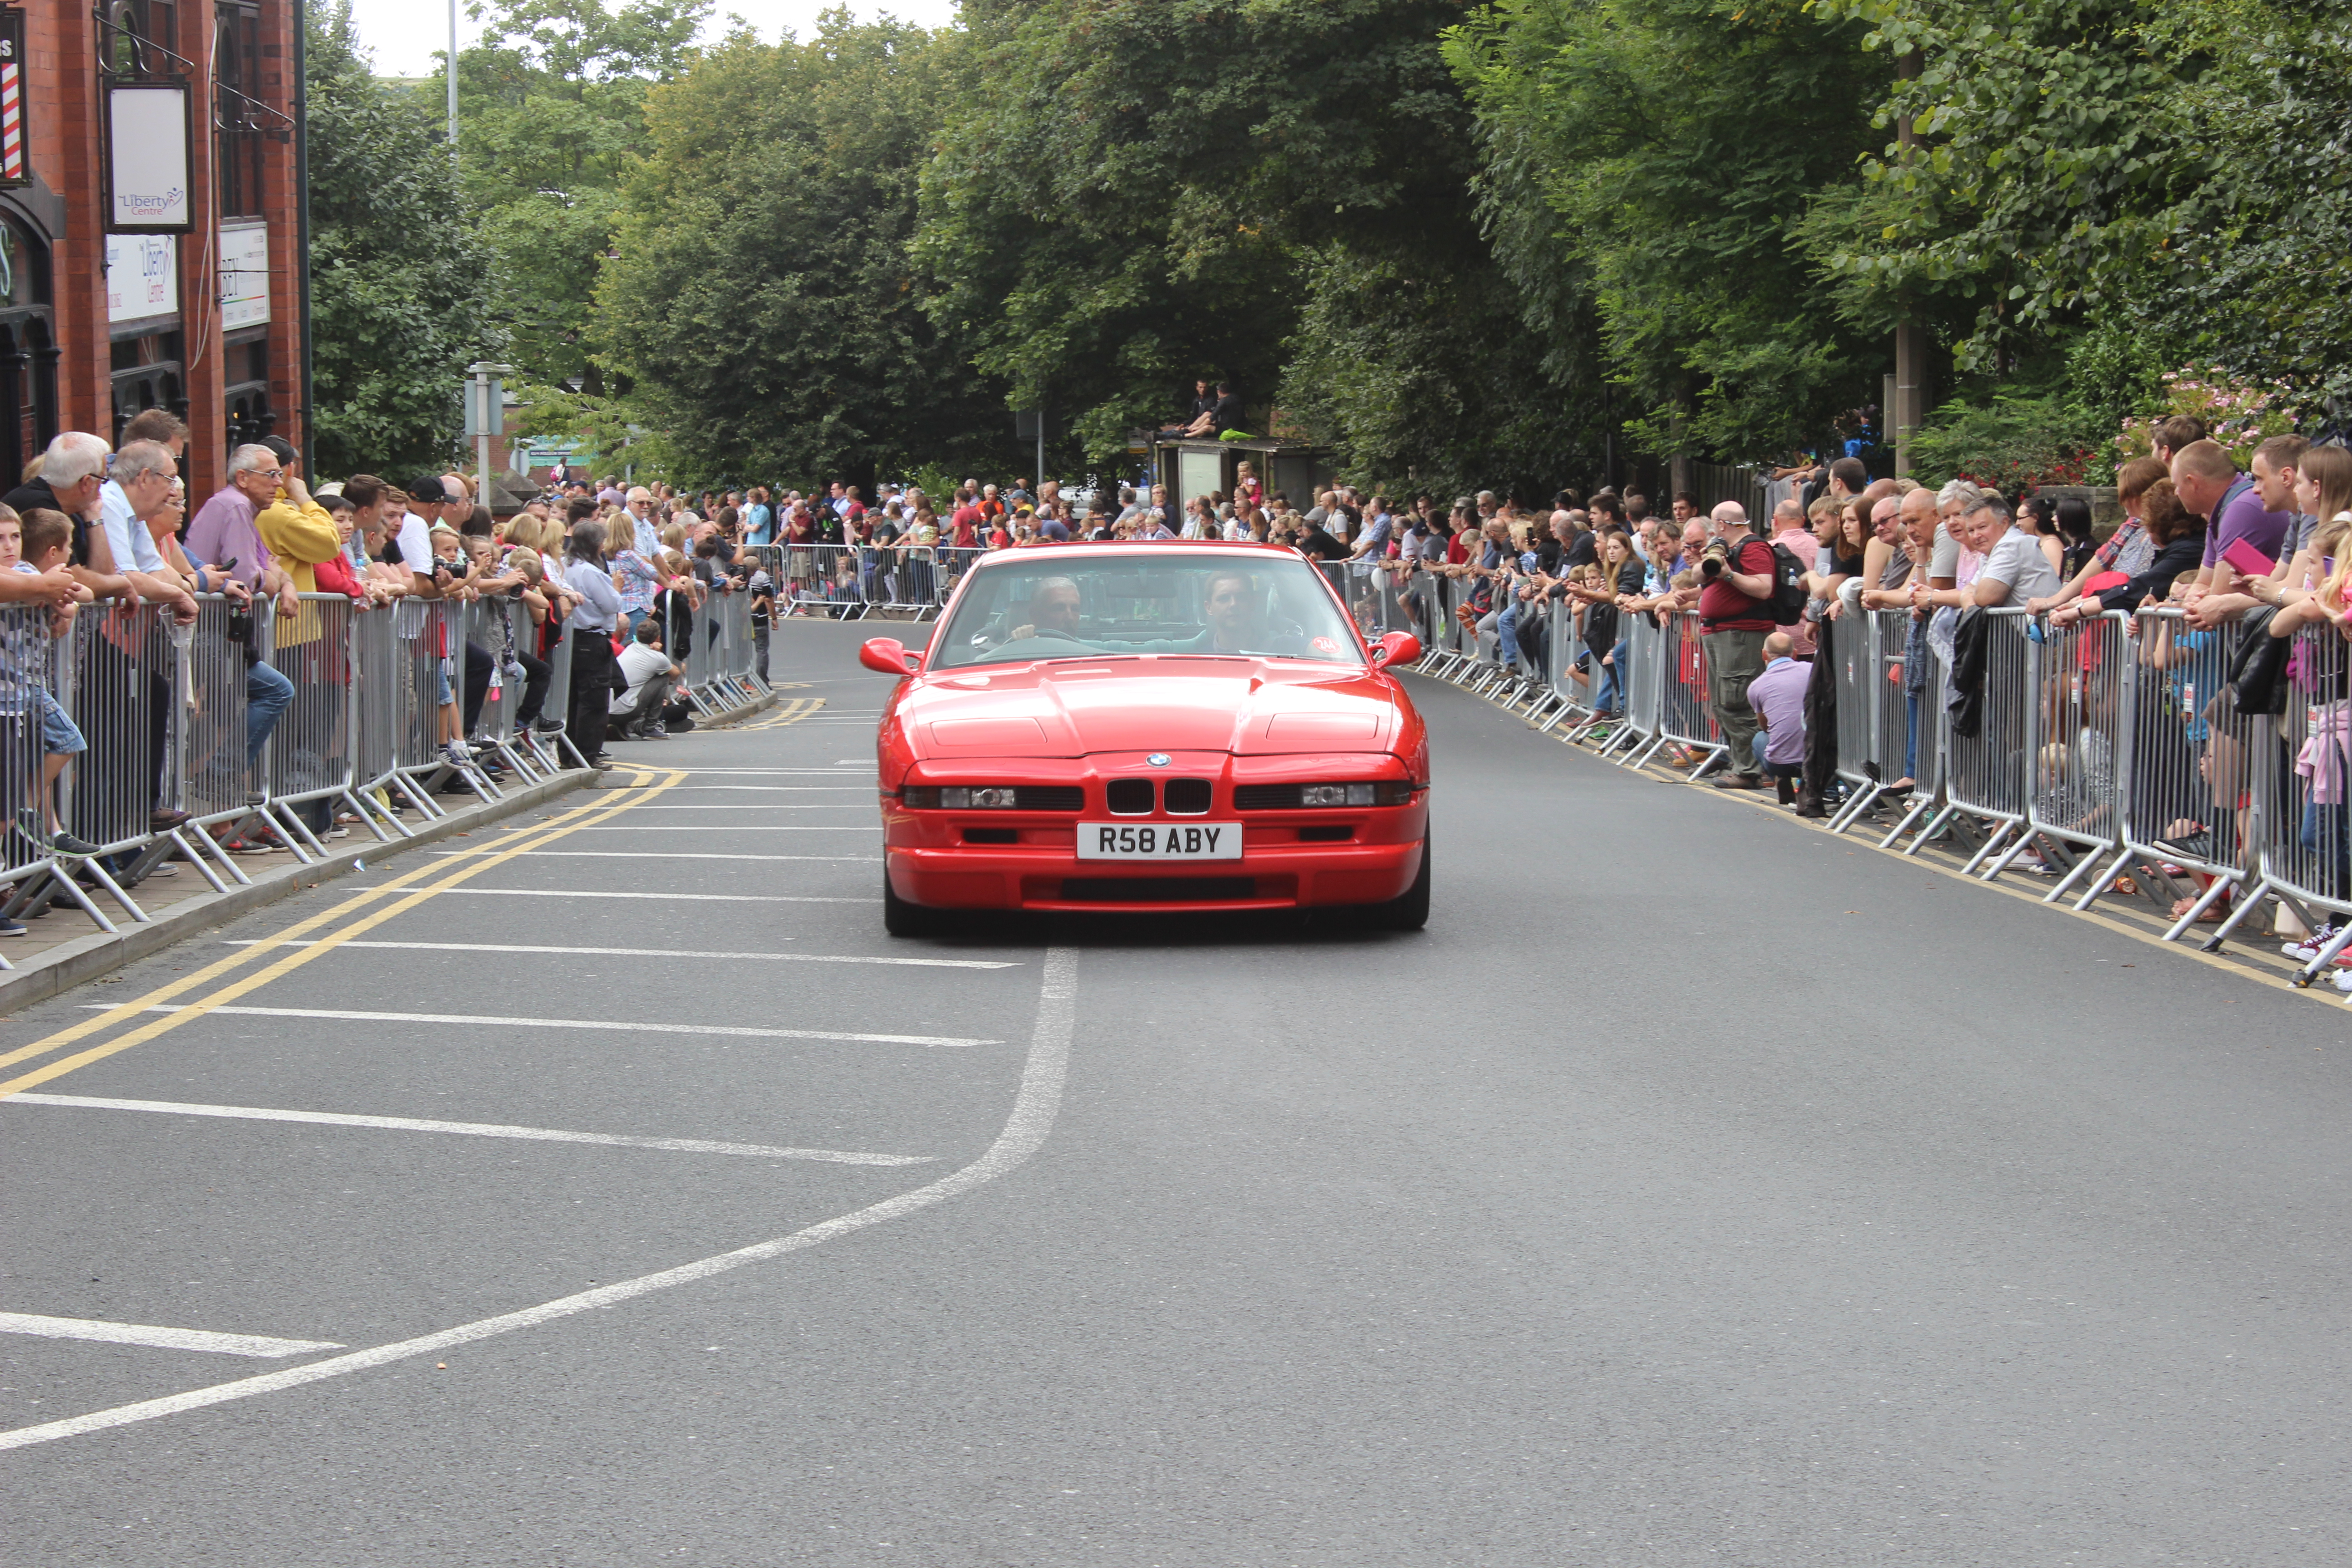 'No go' for town's top tourist events